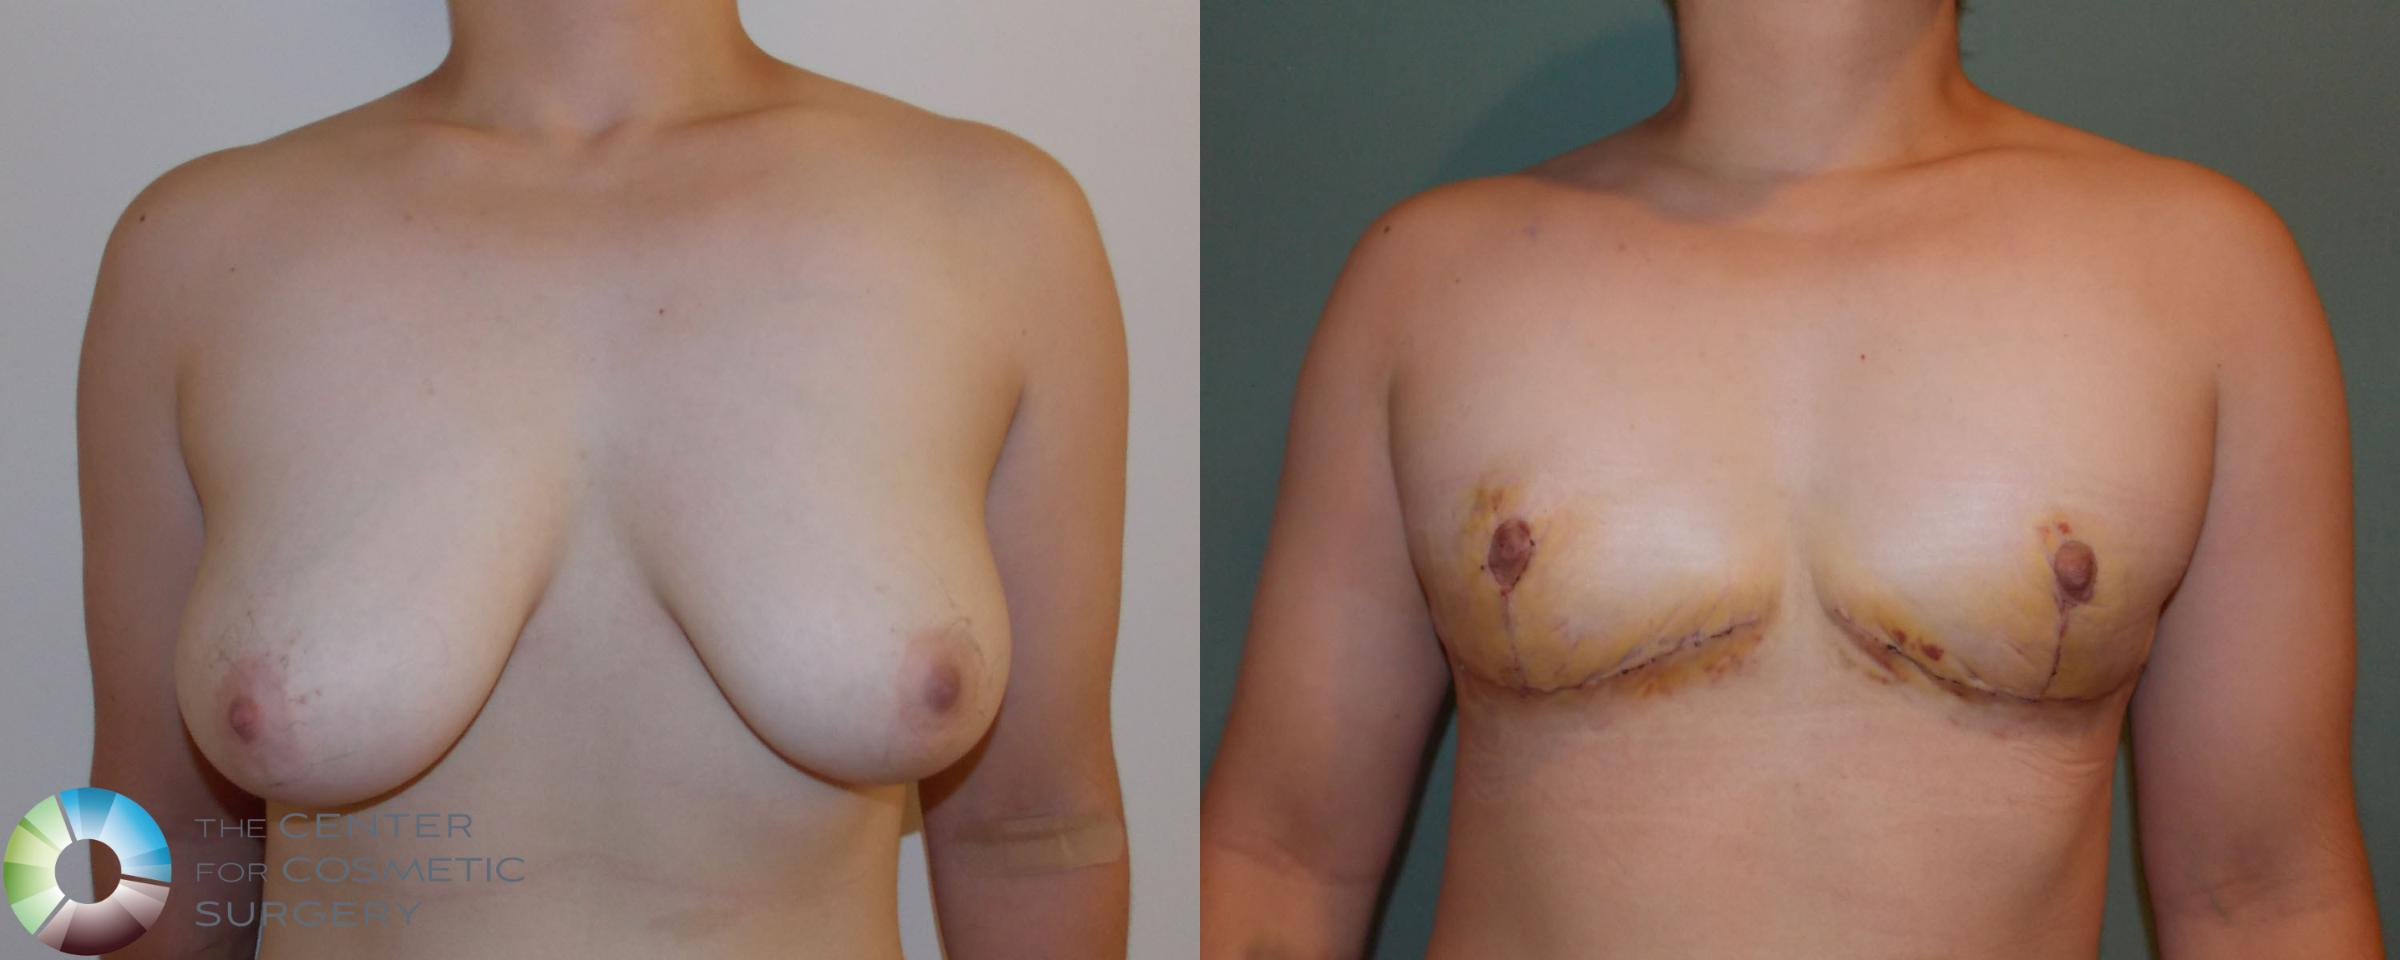 FTM Top Surgery/Chest Masculinization Case 700 Before & After View #1 | Golden, CO | The Center for Cosmetic Surgery